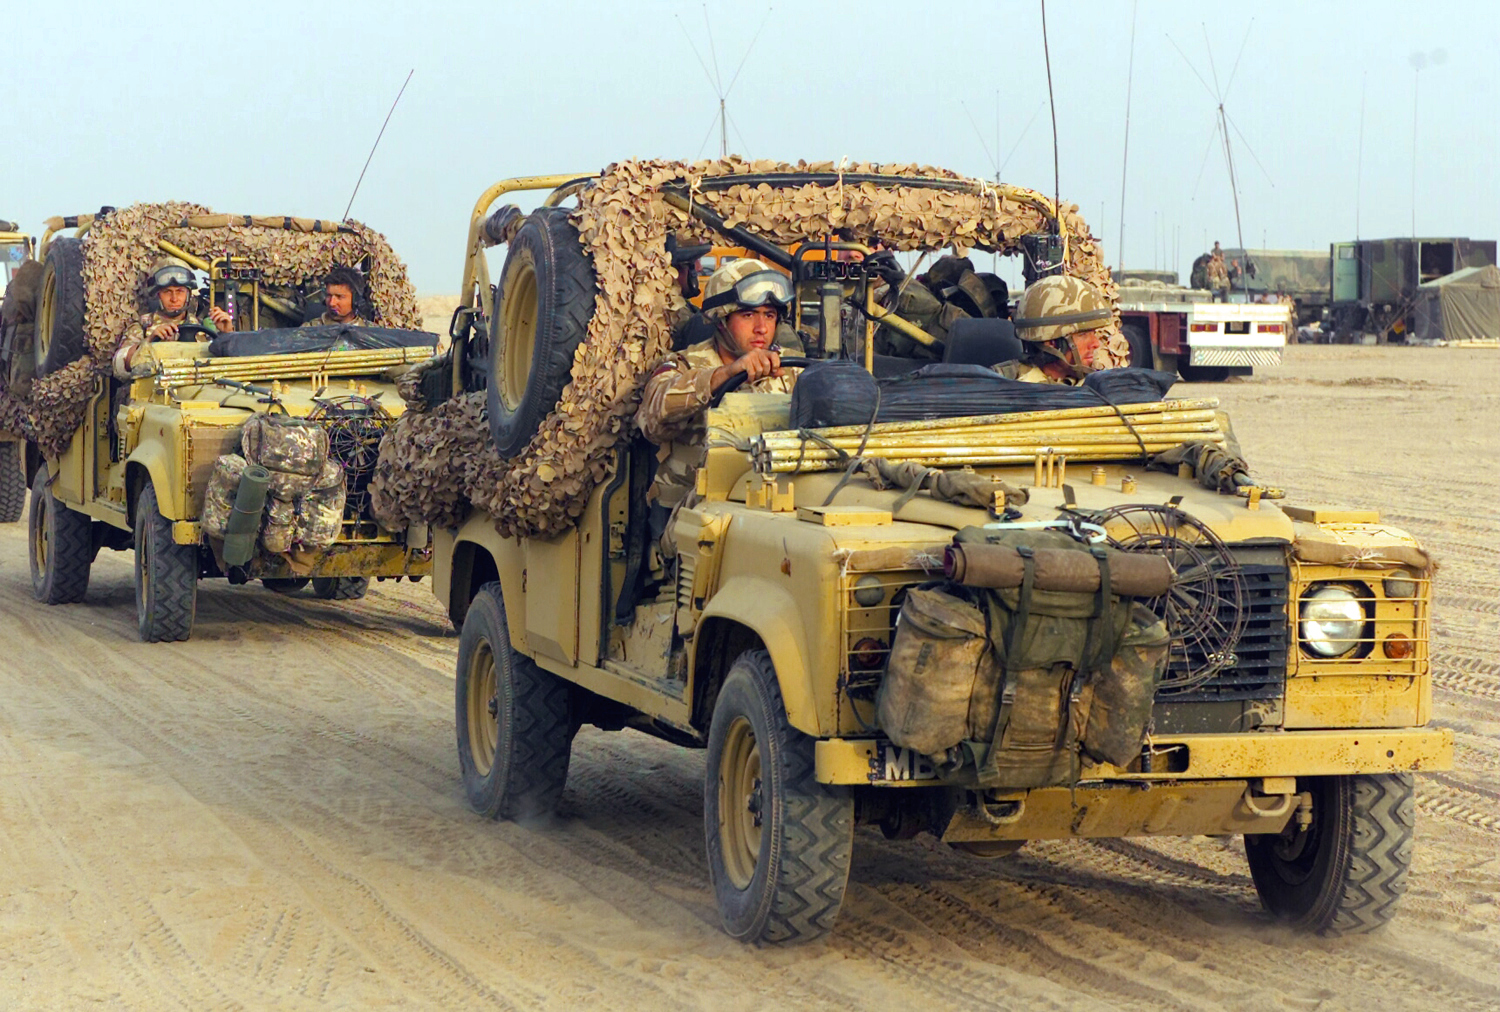 [Image: Land_Rover_Defender_110_patrol_vehicles.jpg]